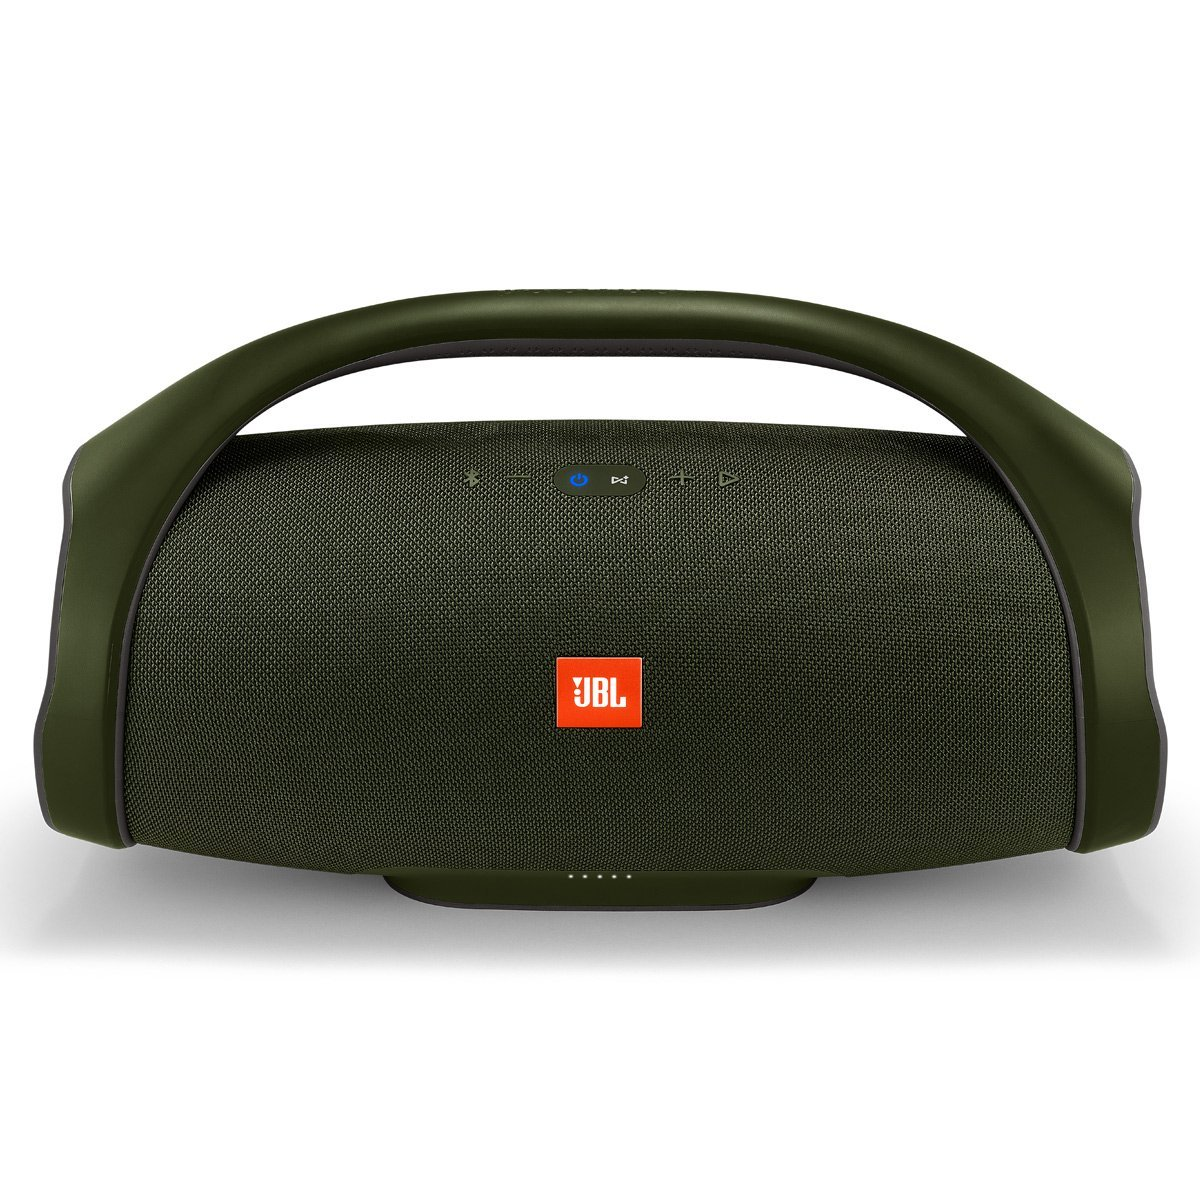 JBLBOOMBOXGRN JBL Boombox Portable Bluetooth Waterproof Speaker (Forest Green) by JBL